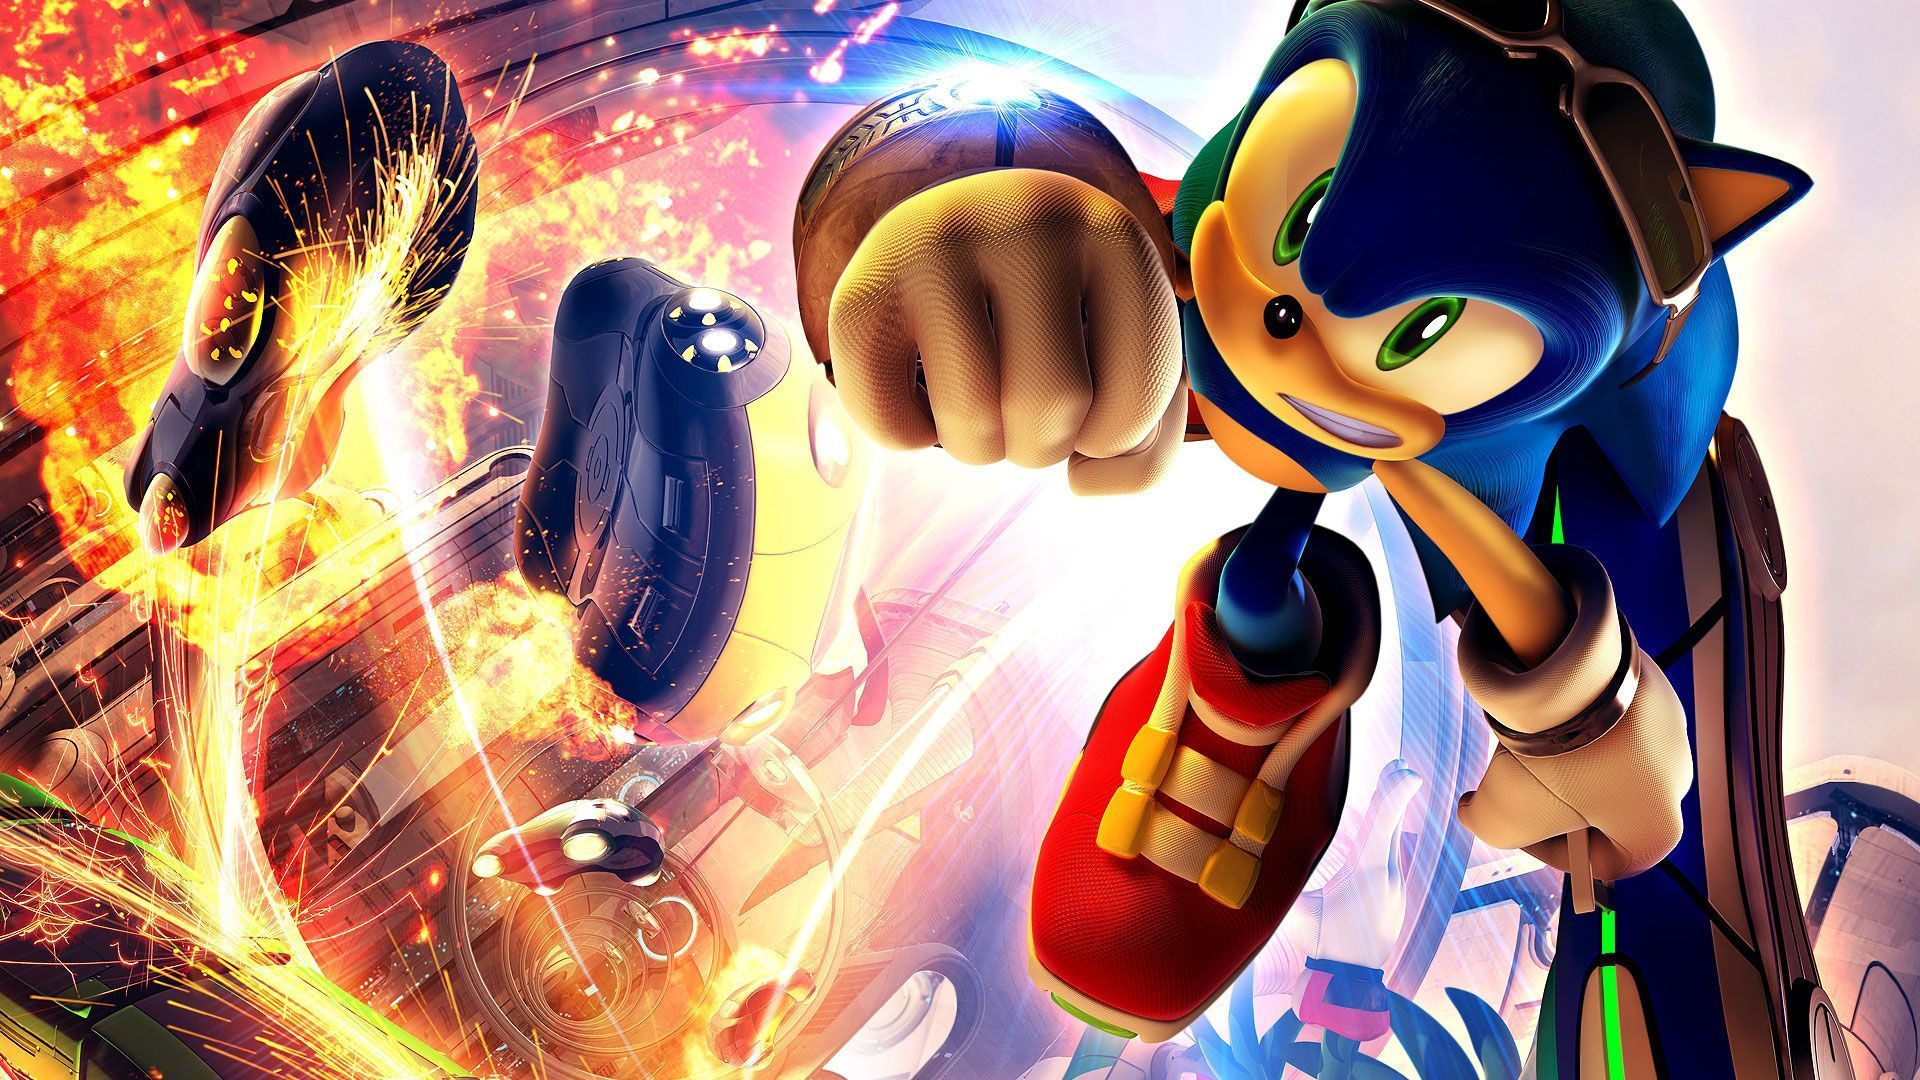 Wallpapers Tagged With 1080p 1080p Hd Wallpapers Page 1 Sonic Dash Sonic The Hedgehog Sonic